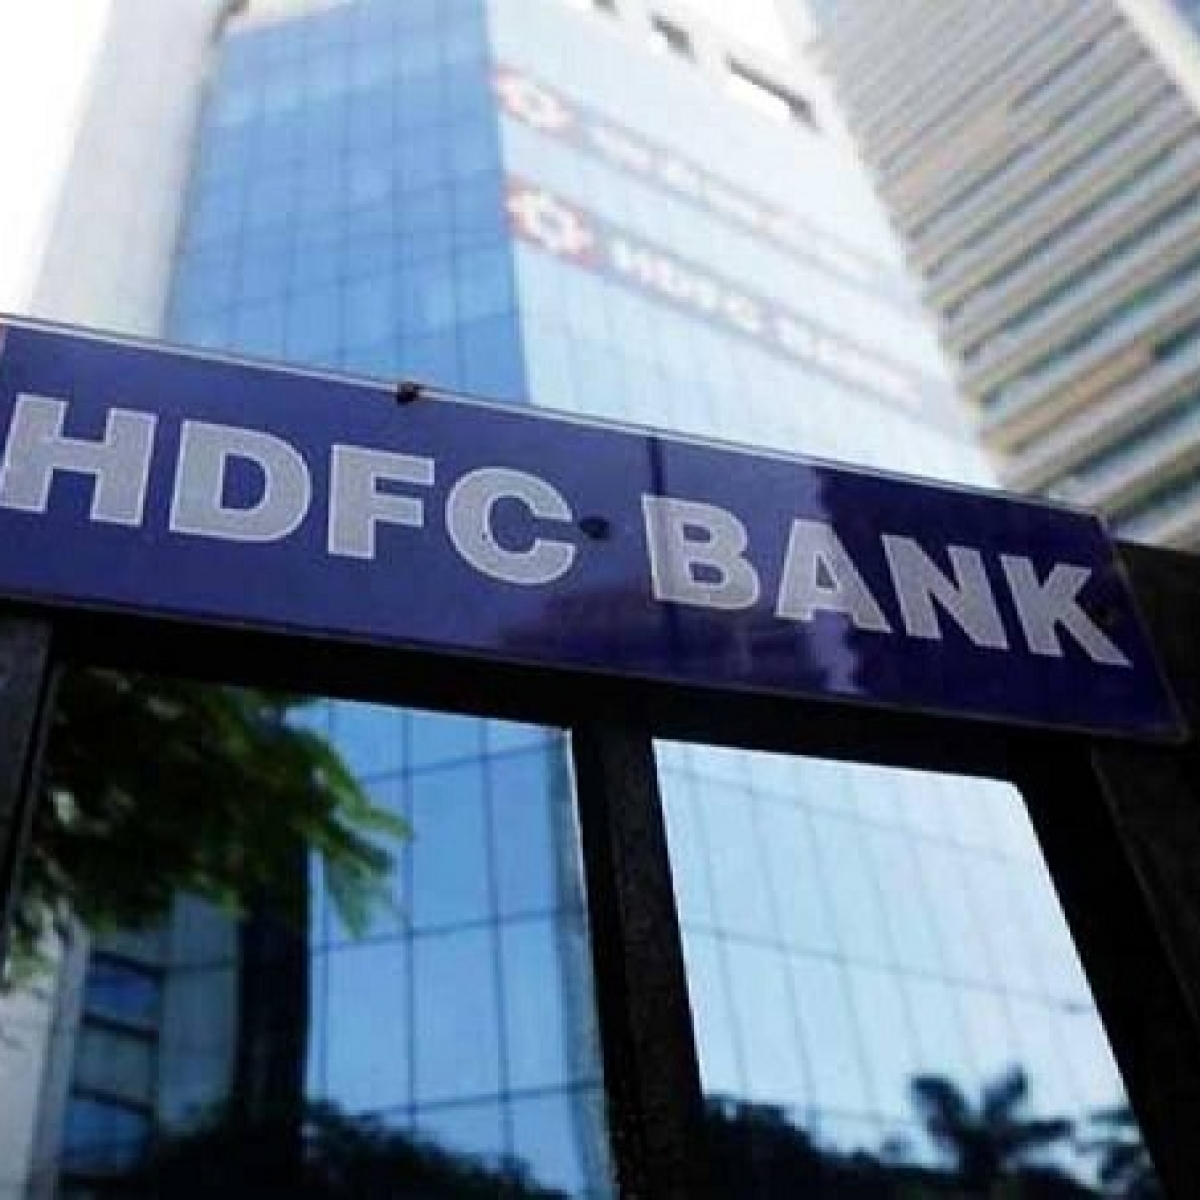 HDFC to raise Rs 8,000 crore for capital buffers